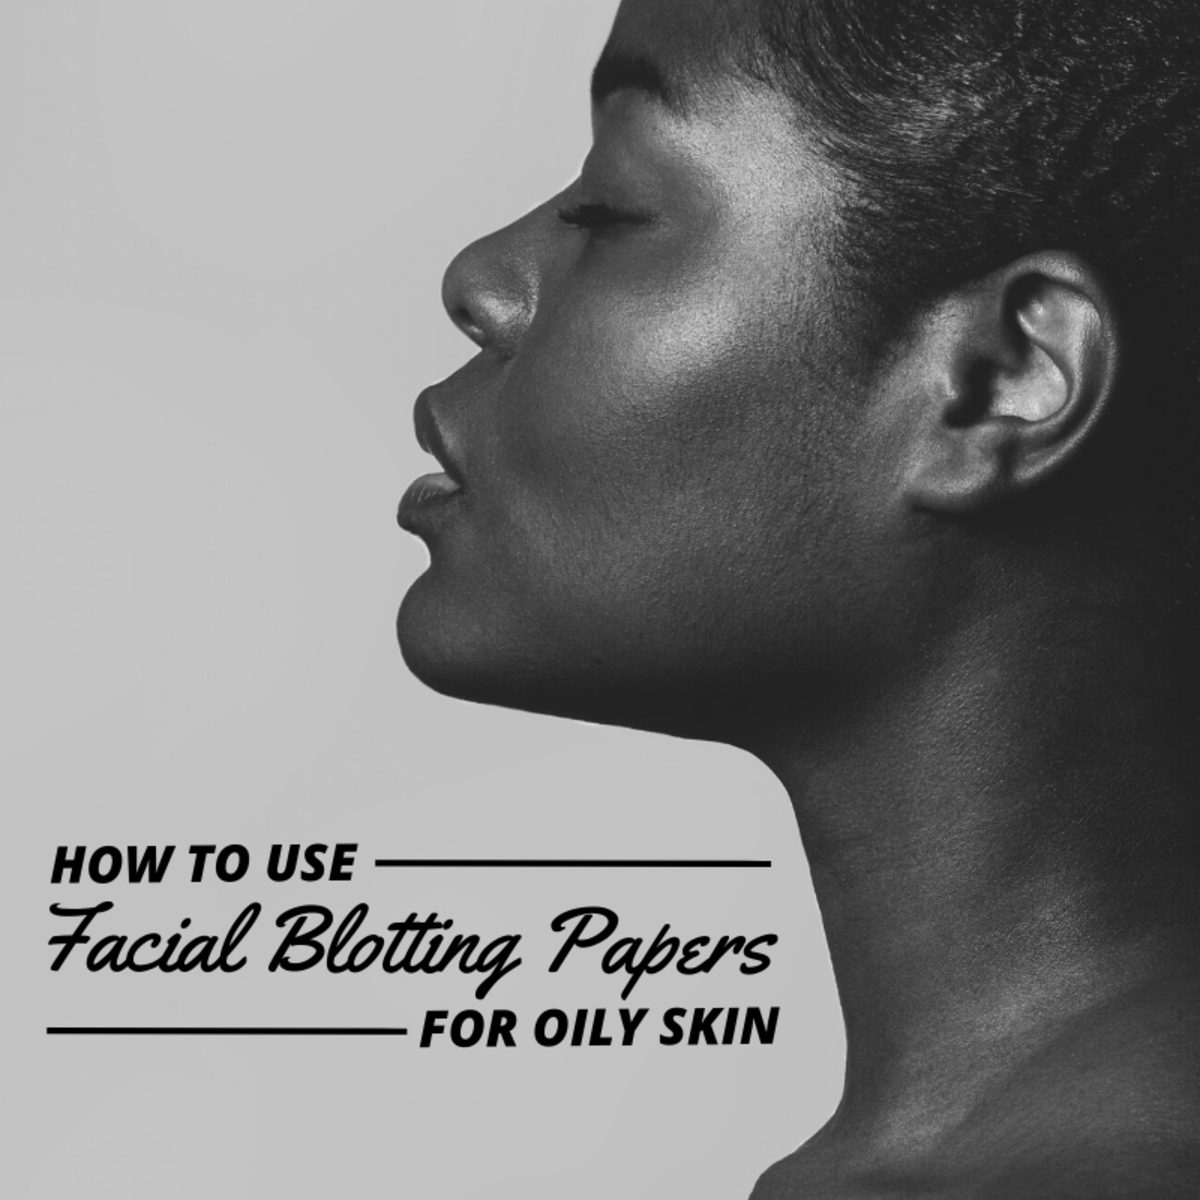 Facial blotting papers allow you to remove excess oil from your face without messing with your makeup.